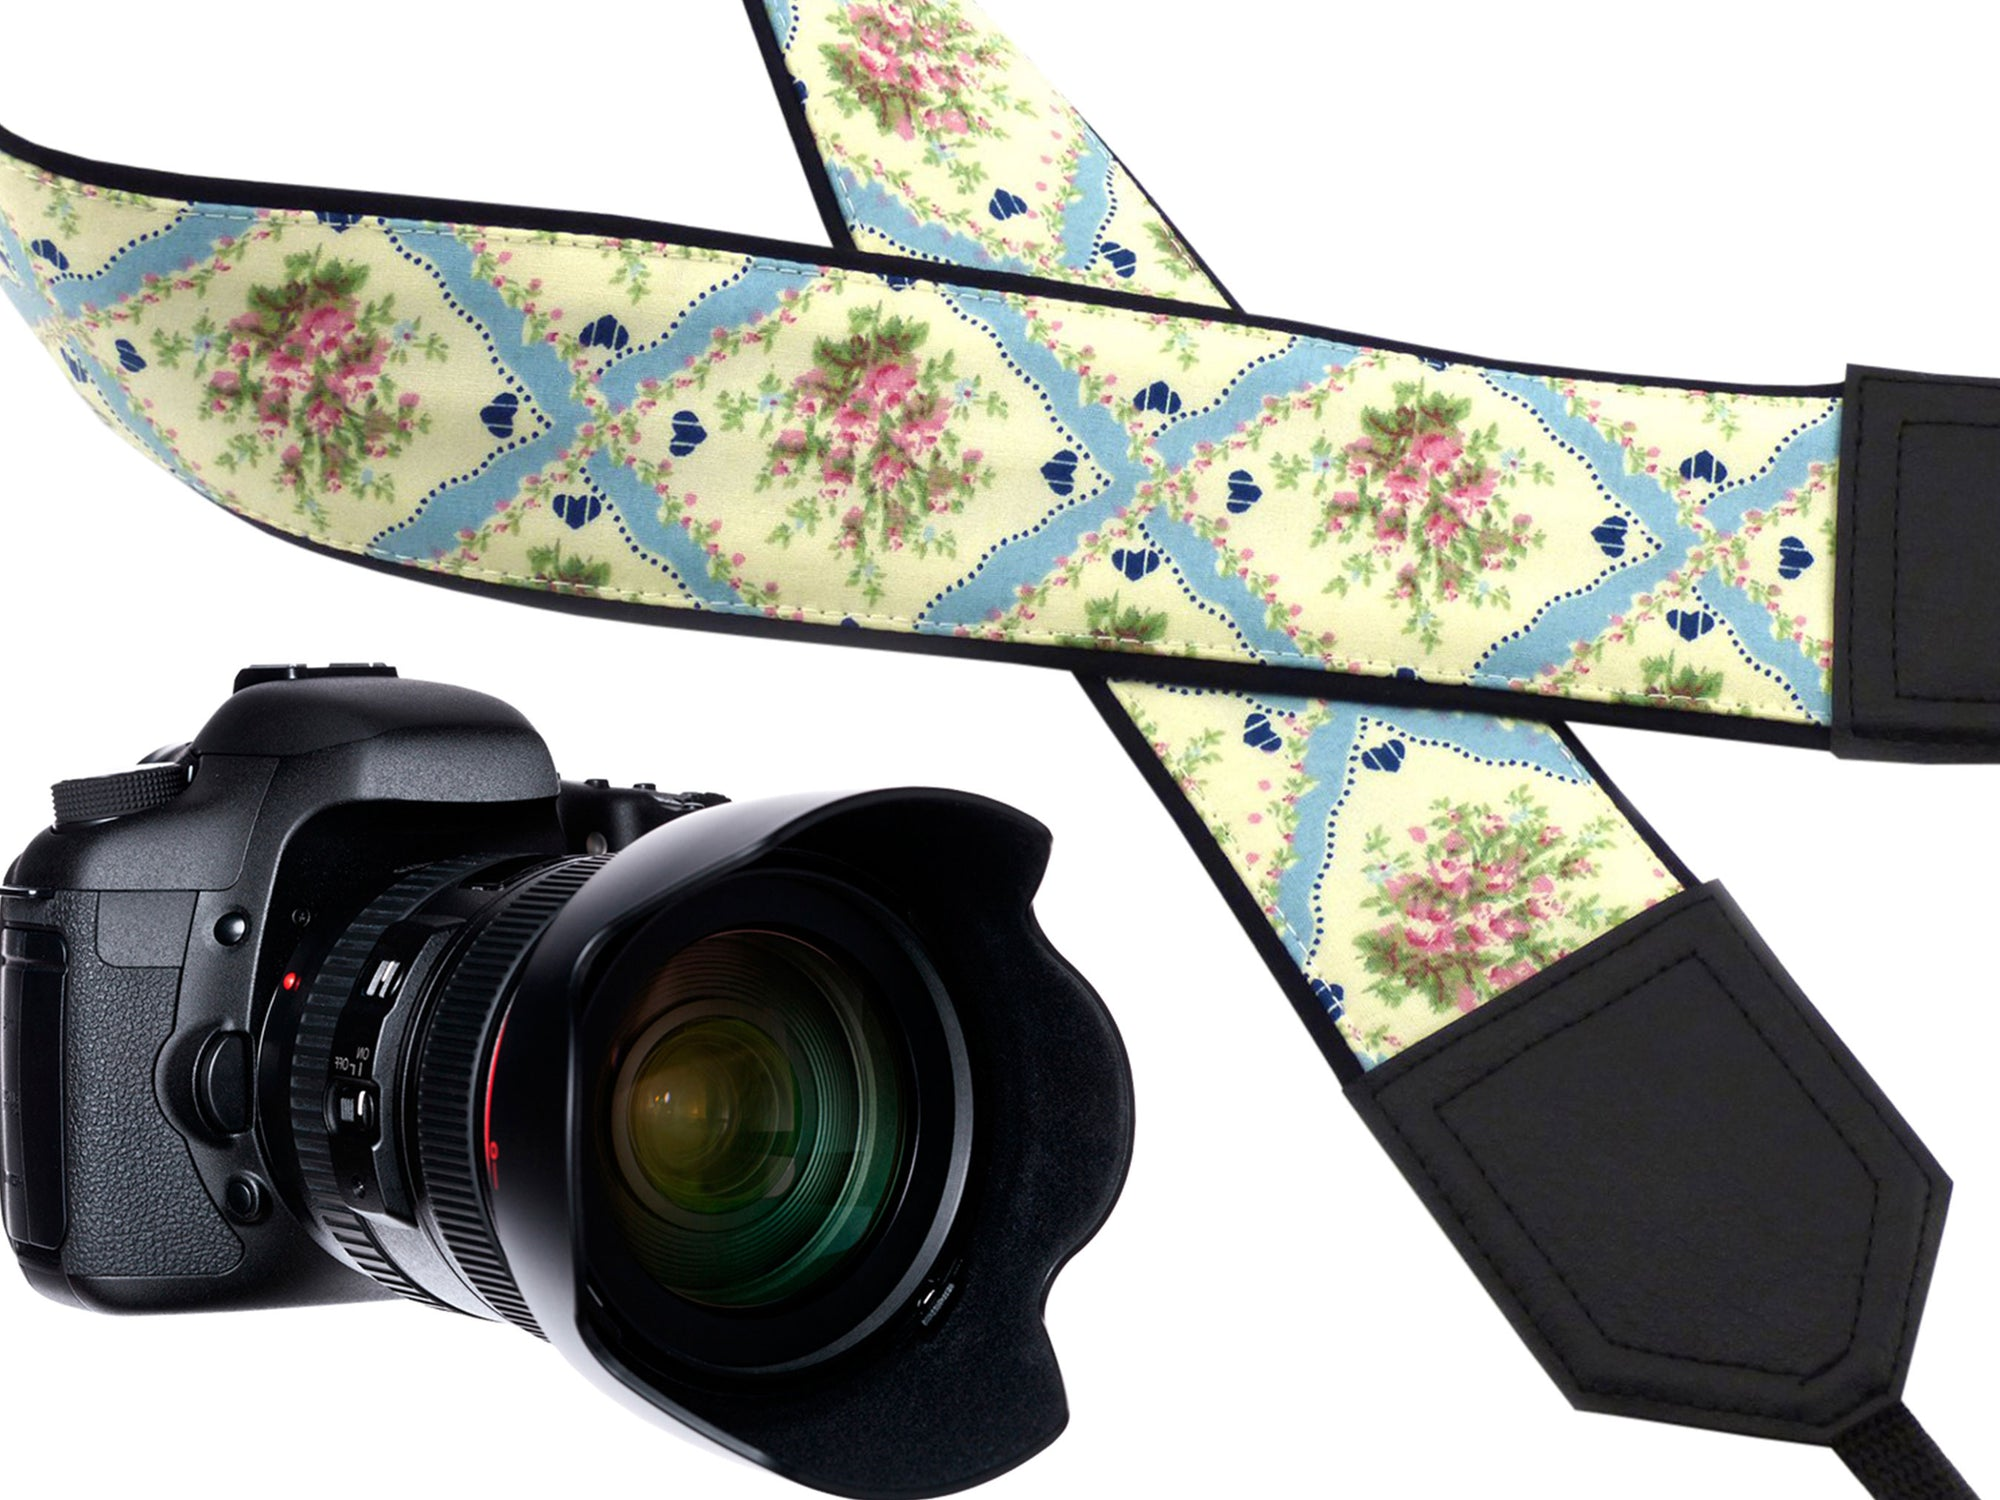 Tracery design camera strap. Elegant Vintage Flowers Camera strap. floral design camera strap. DSLR / SLR Camera Strap. Camera accessories by InTePro